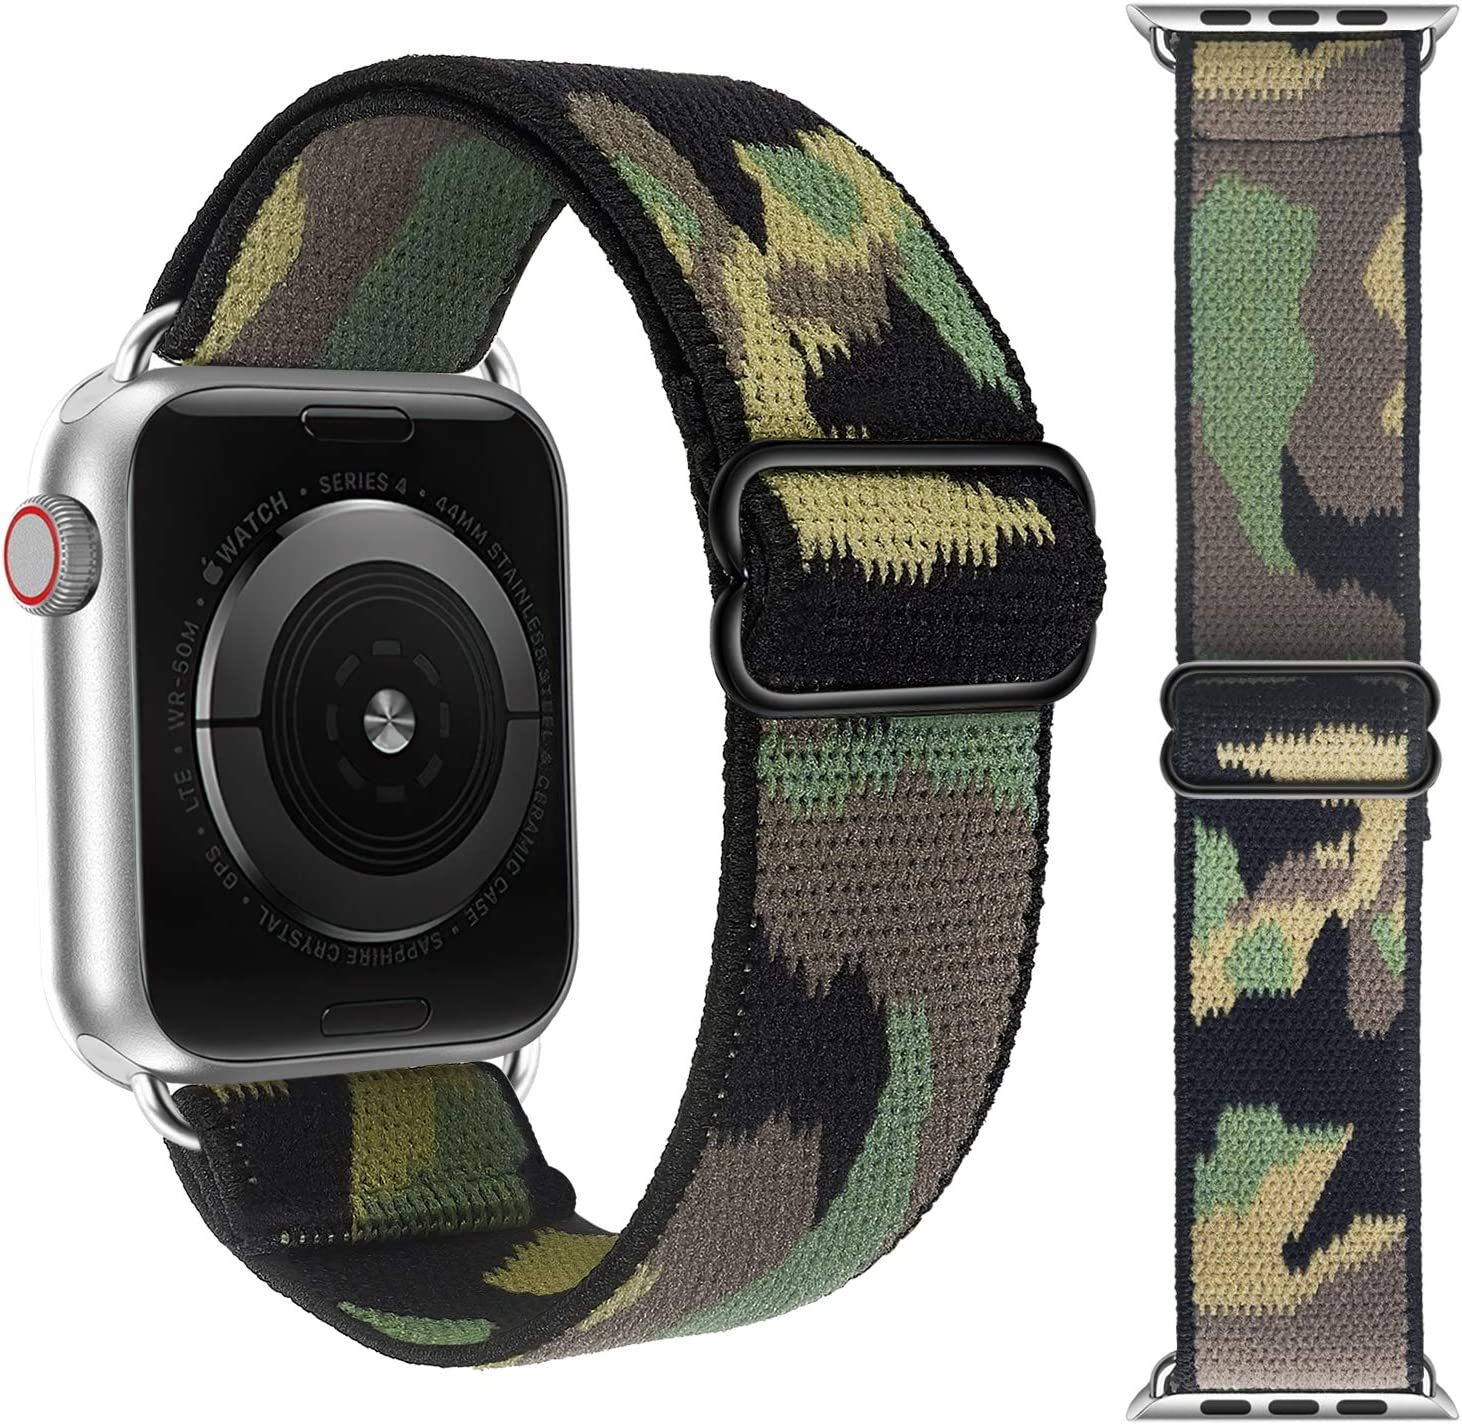 Adjustable Elastic Solo Loop Bands Compatible with Apple Watch 42mm 44mm Stretchy Sport Soft Strap Women Men Replacement Wristband for iWatch Series 6 SE 5 4 3 2 1 Camouflage